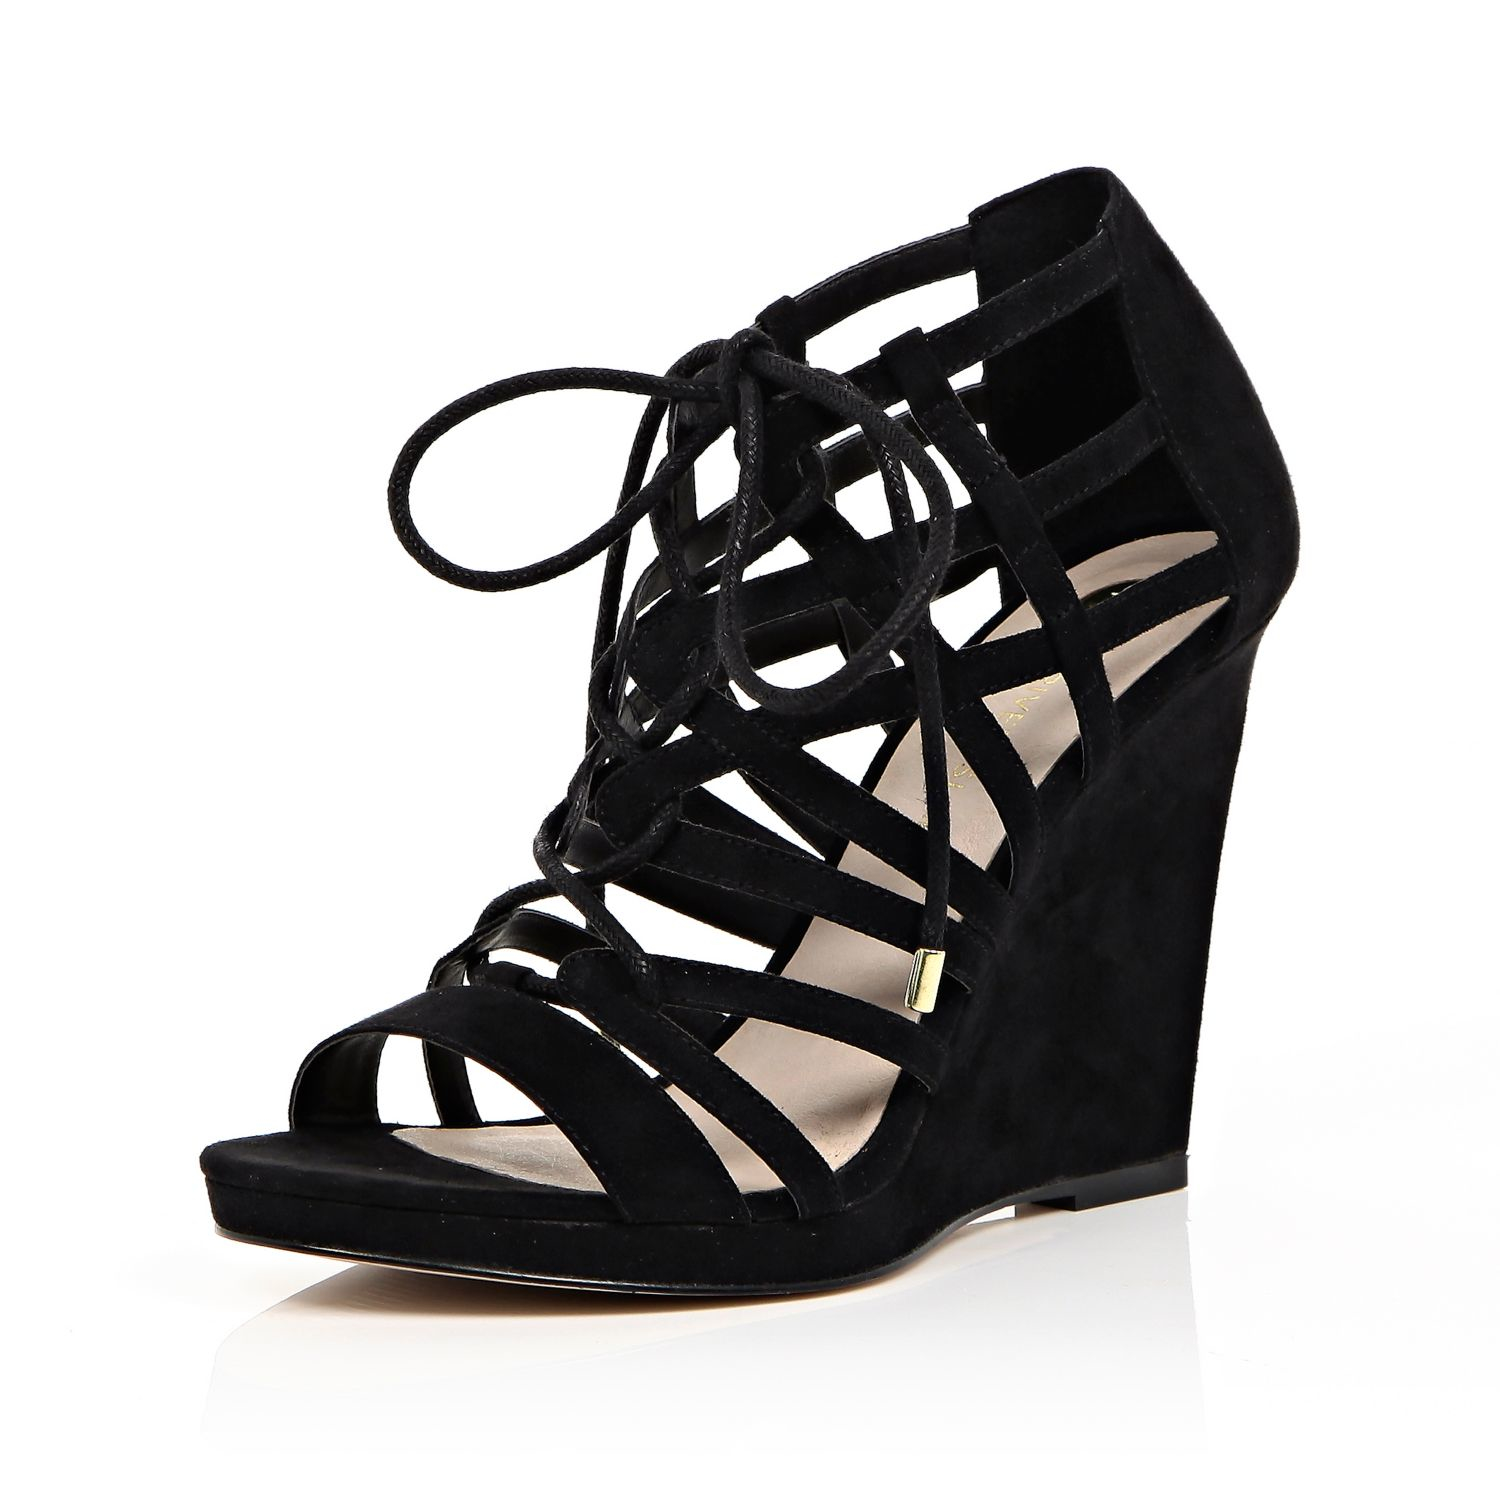 b5cd8a3fac8 River Island Black Lace-up Caged Wedge Heels in Black - Lyst